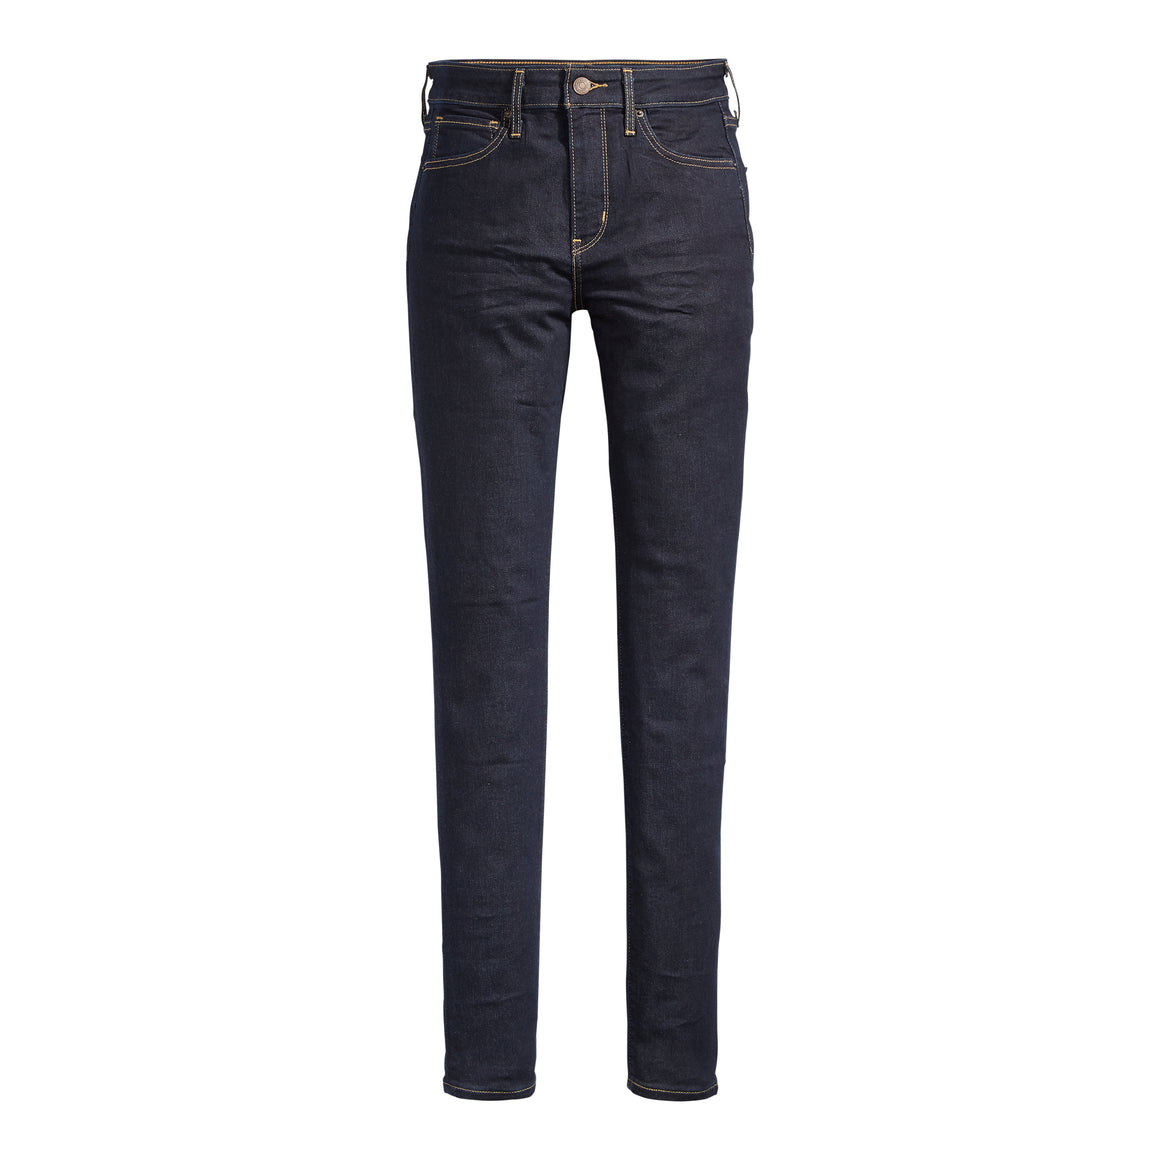 721 High-Waisted Skinny Jeans for Women in To The Nine - Blue